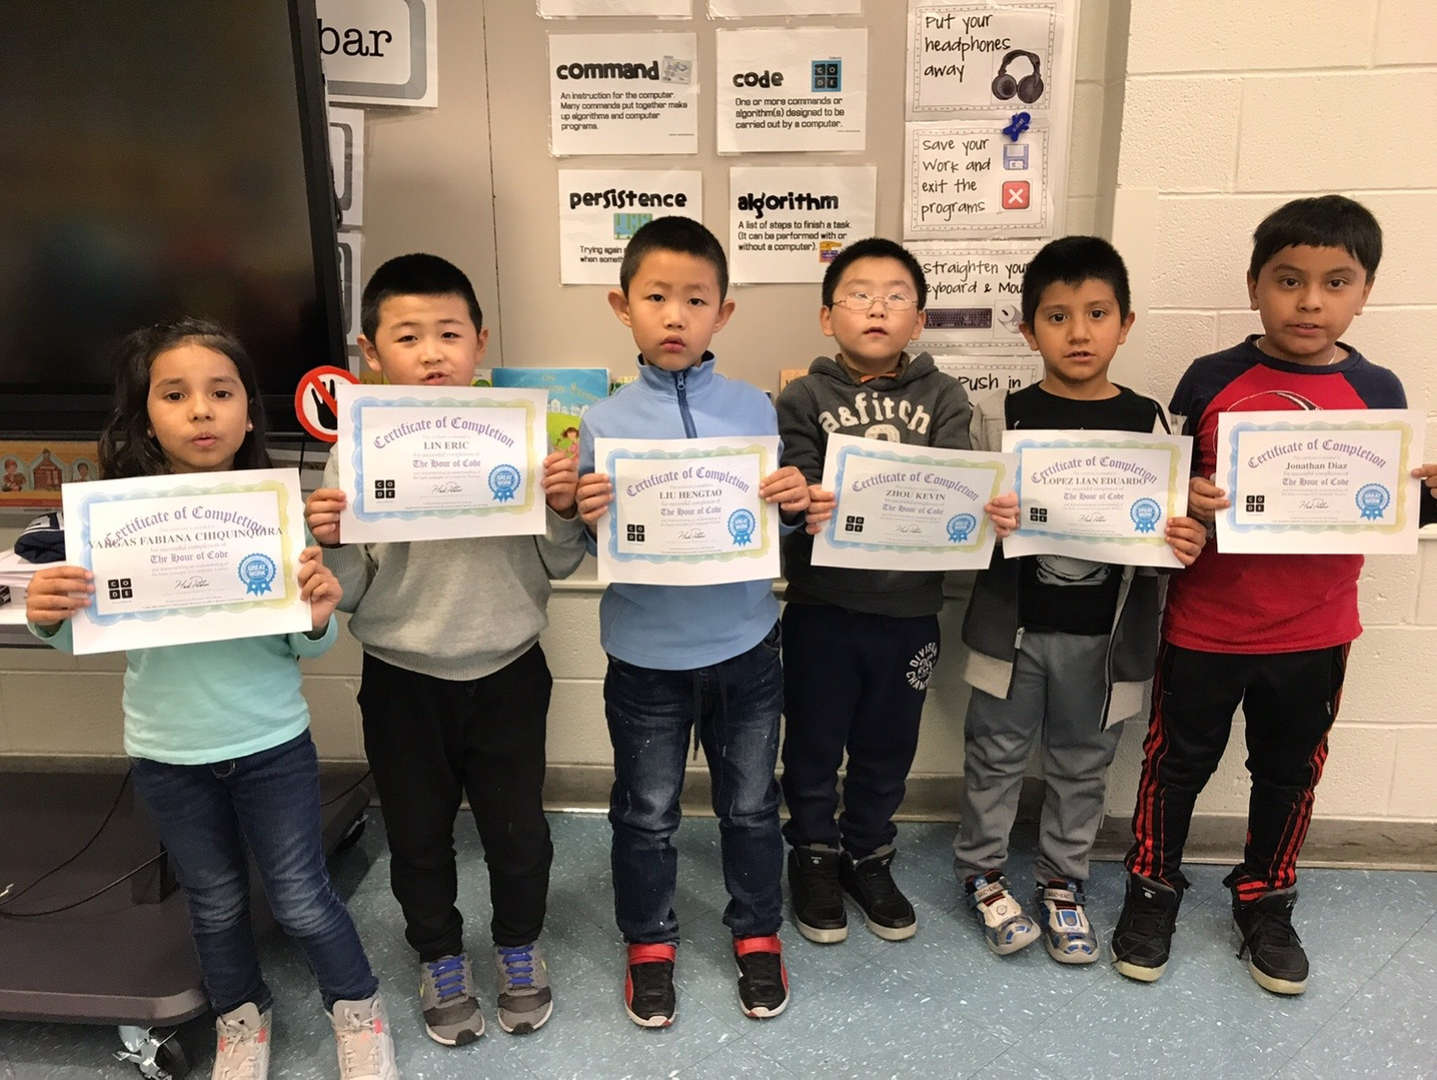 2nd grade boys holding their coding certificates